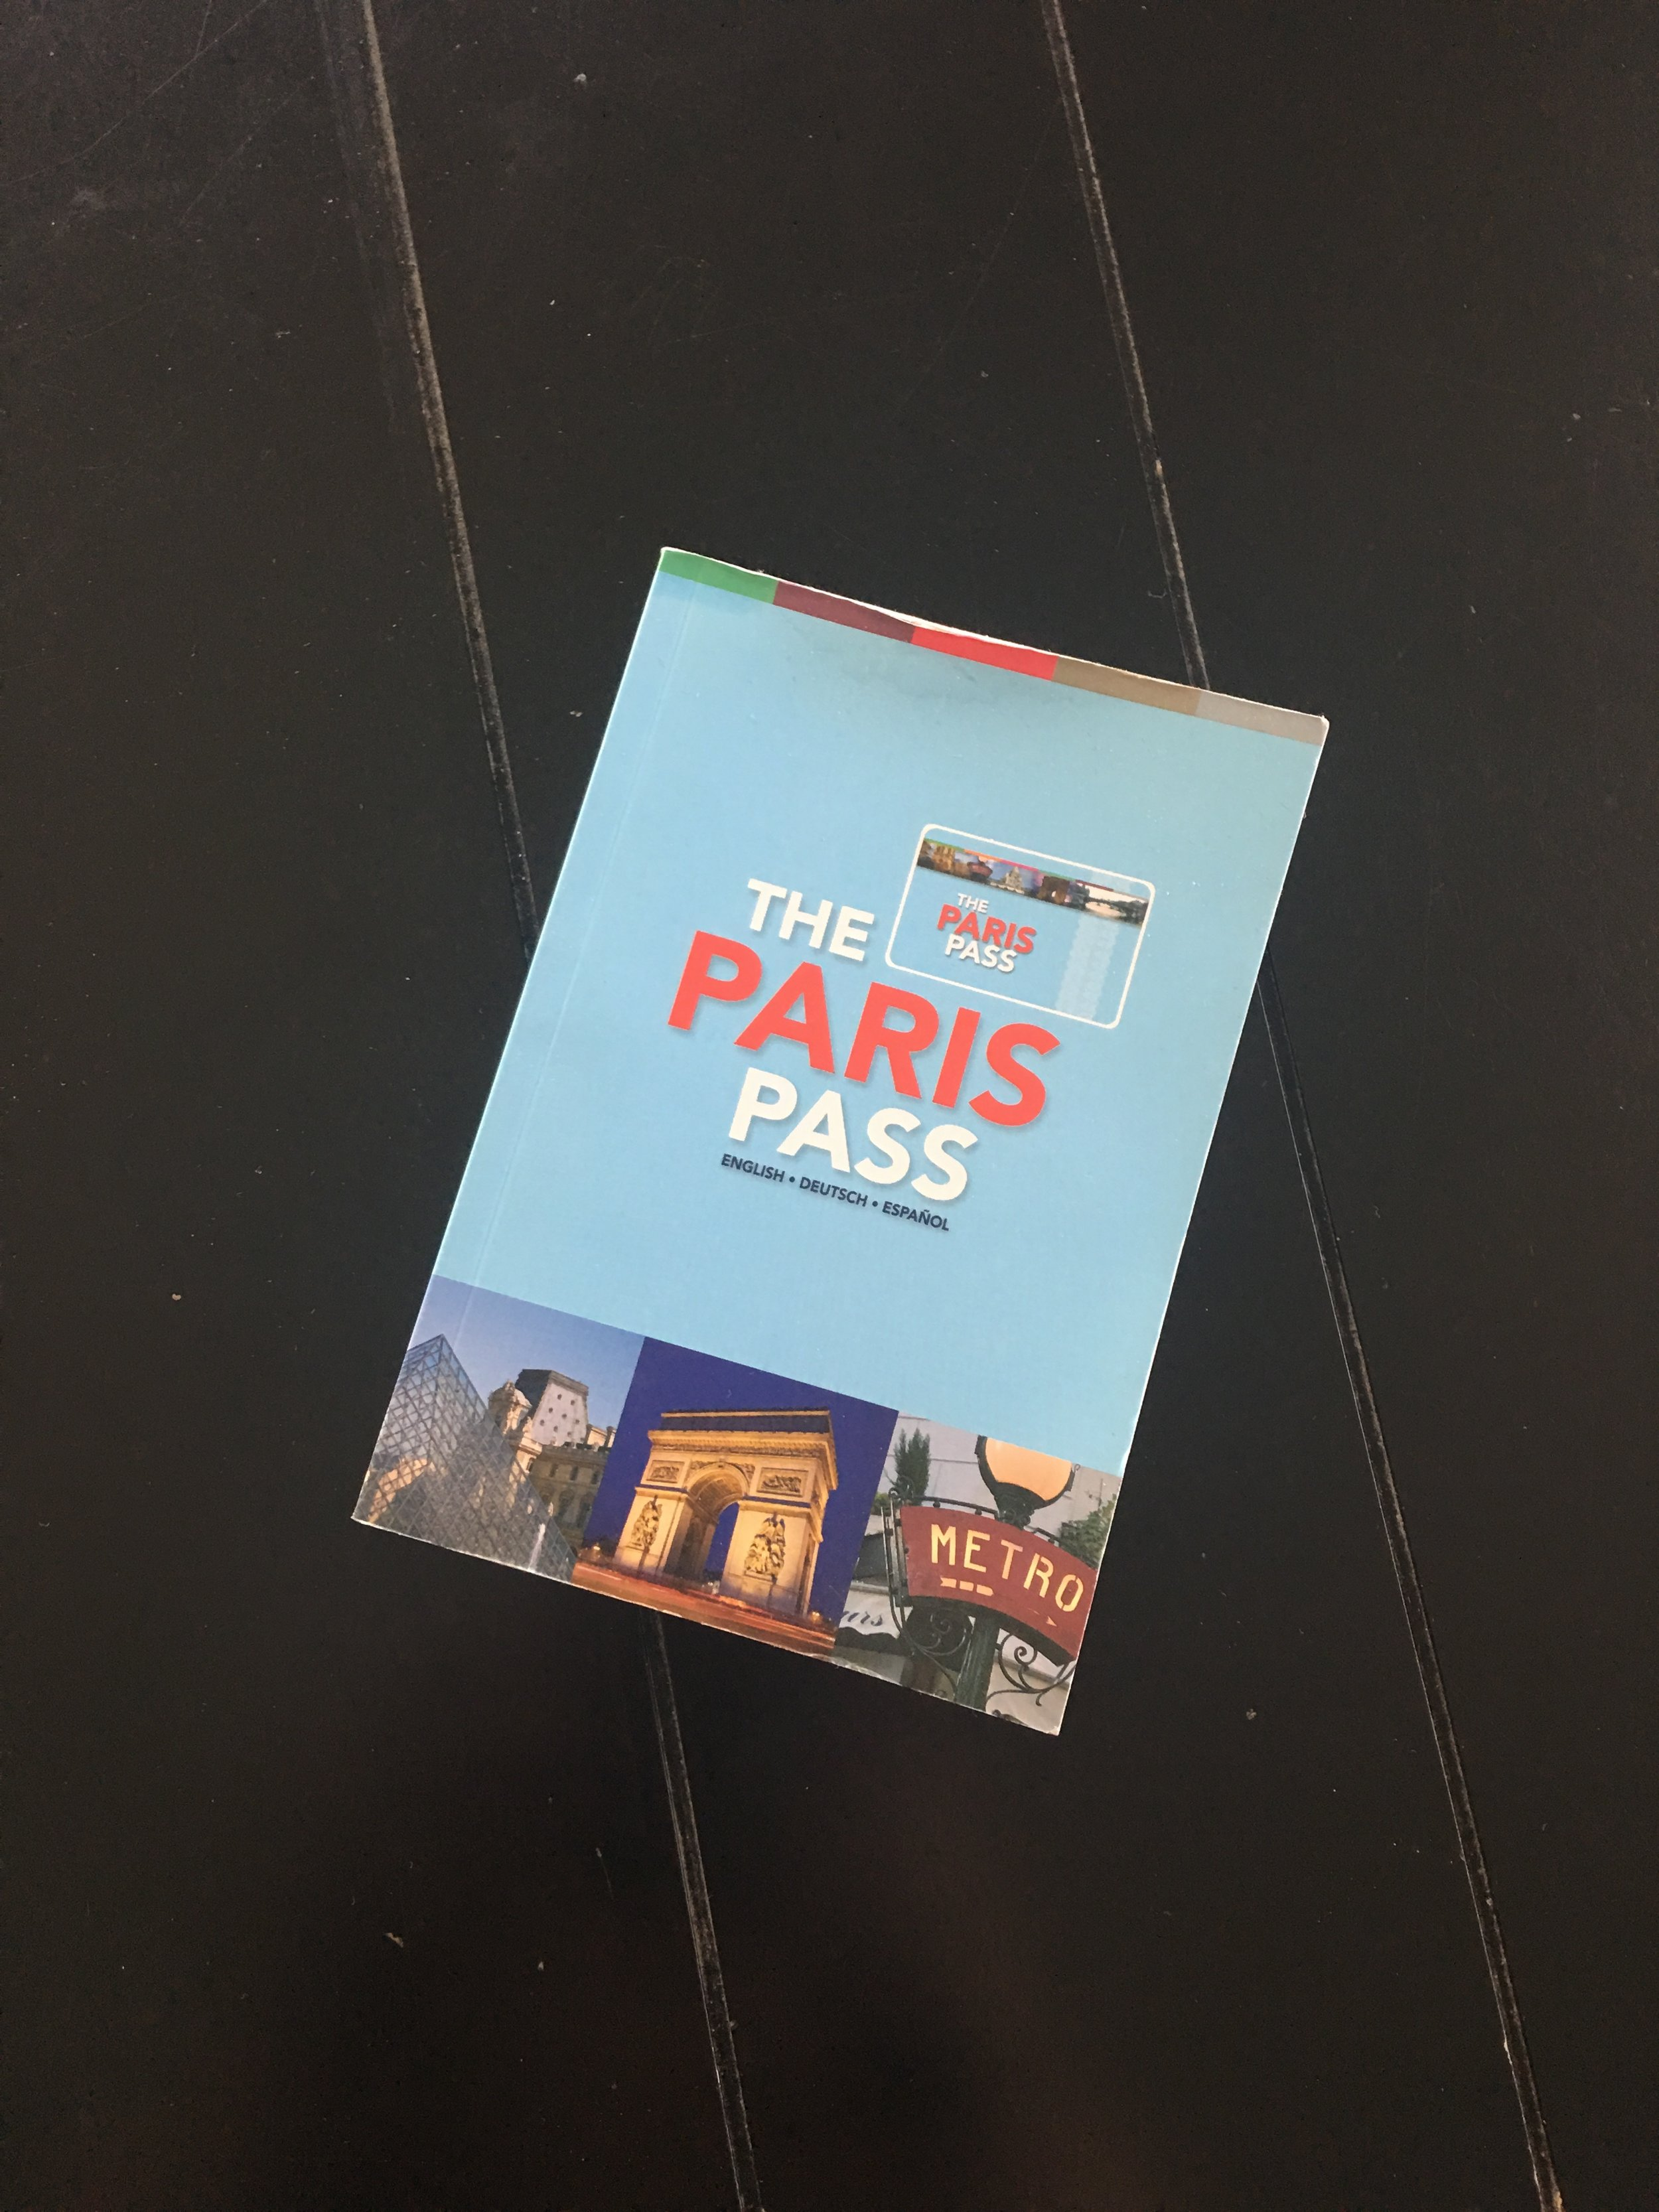 This little book came with it as well, and it had information on each site listed with the Paris Pass which was super helpful!